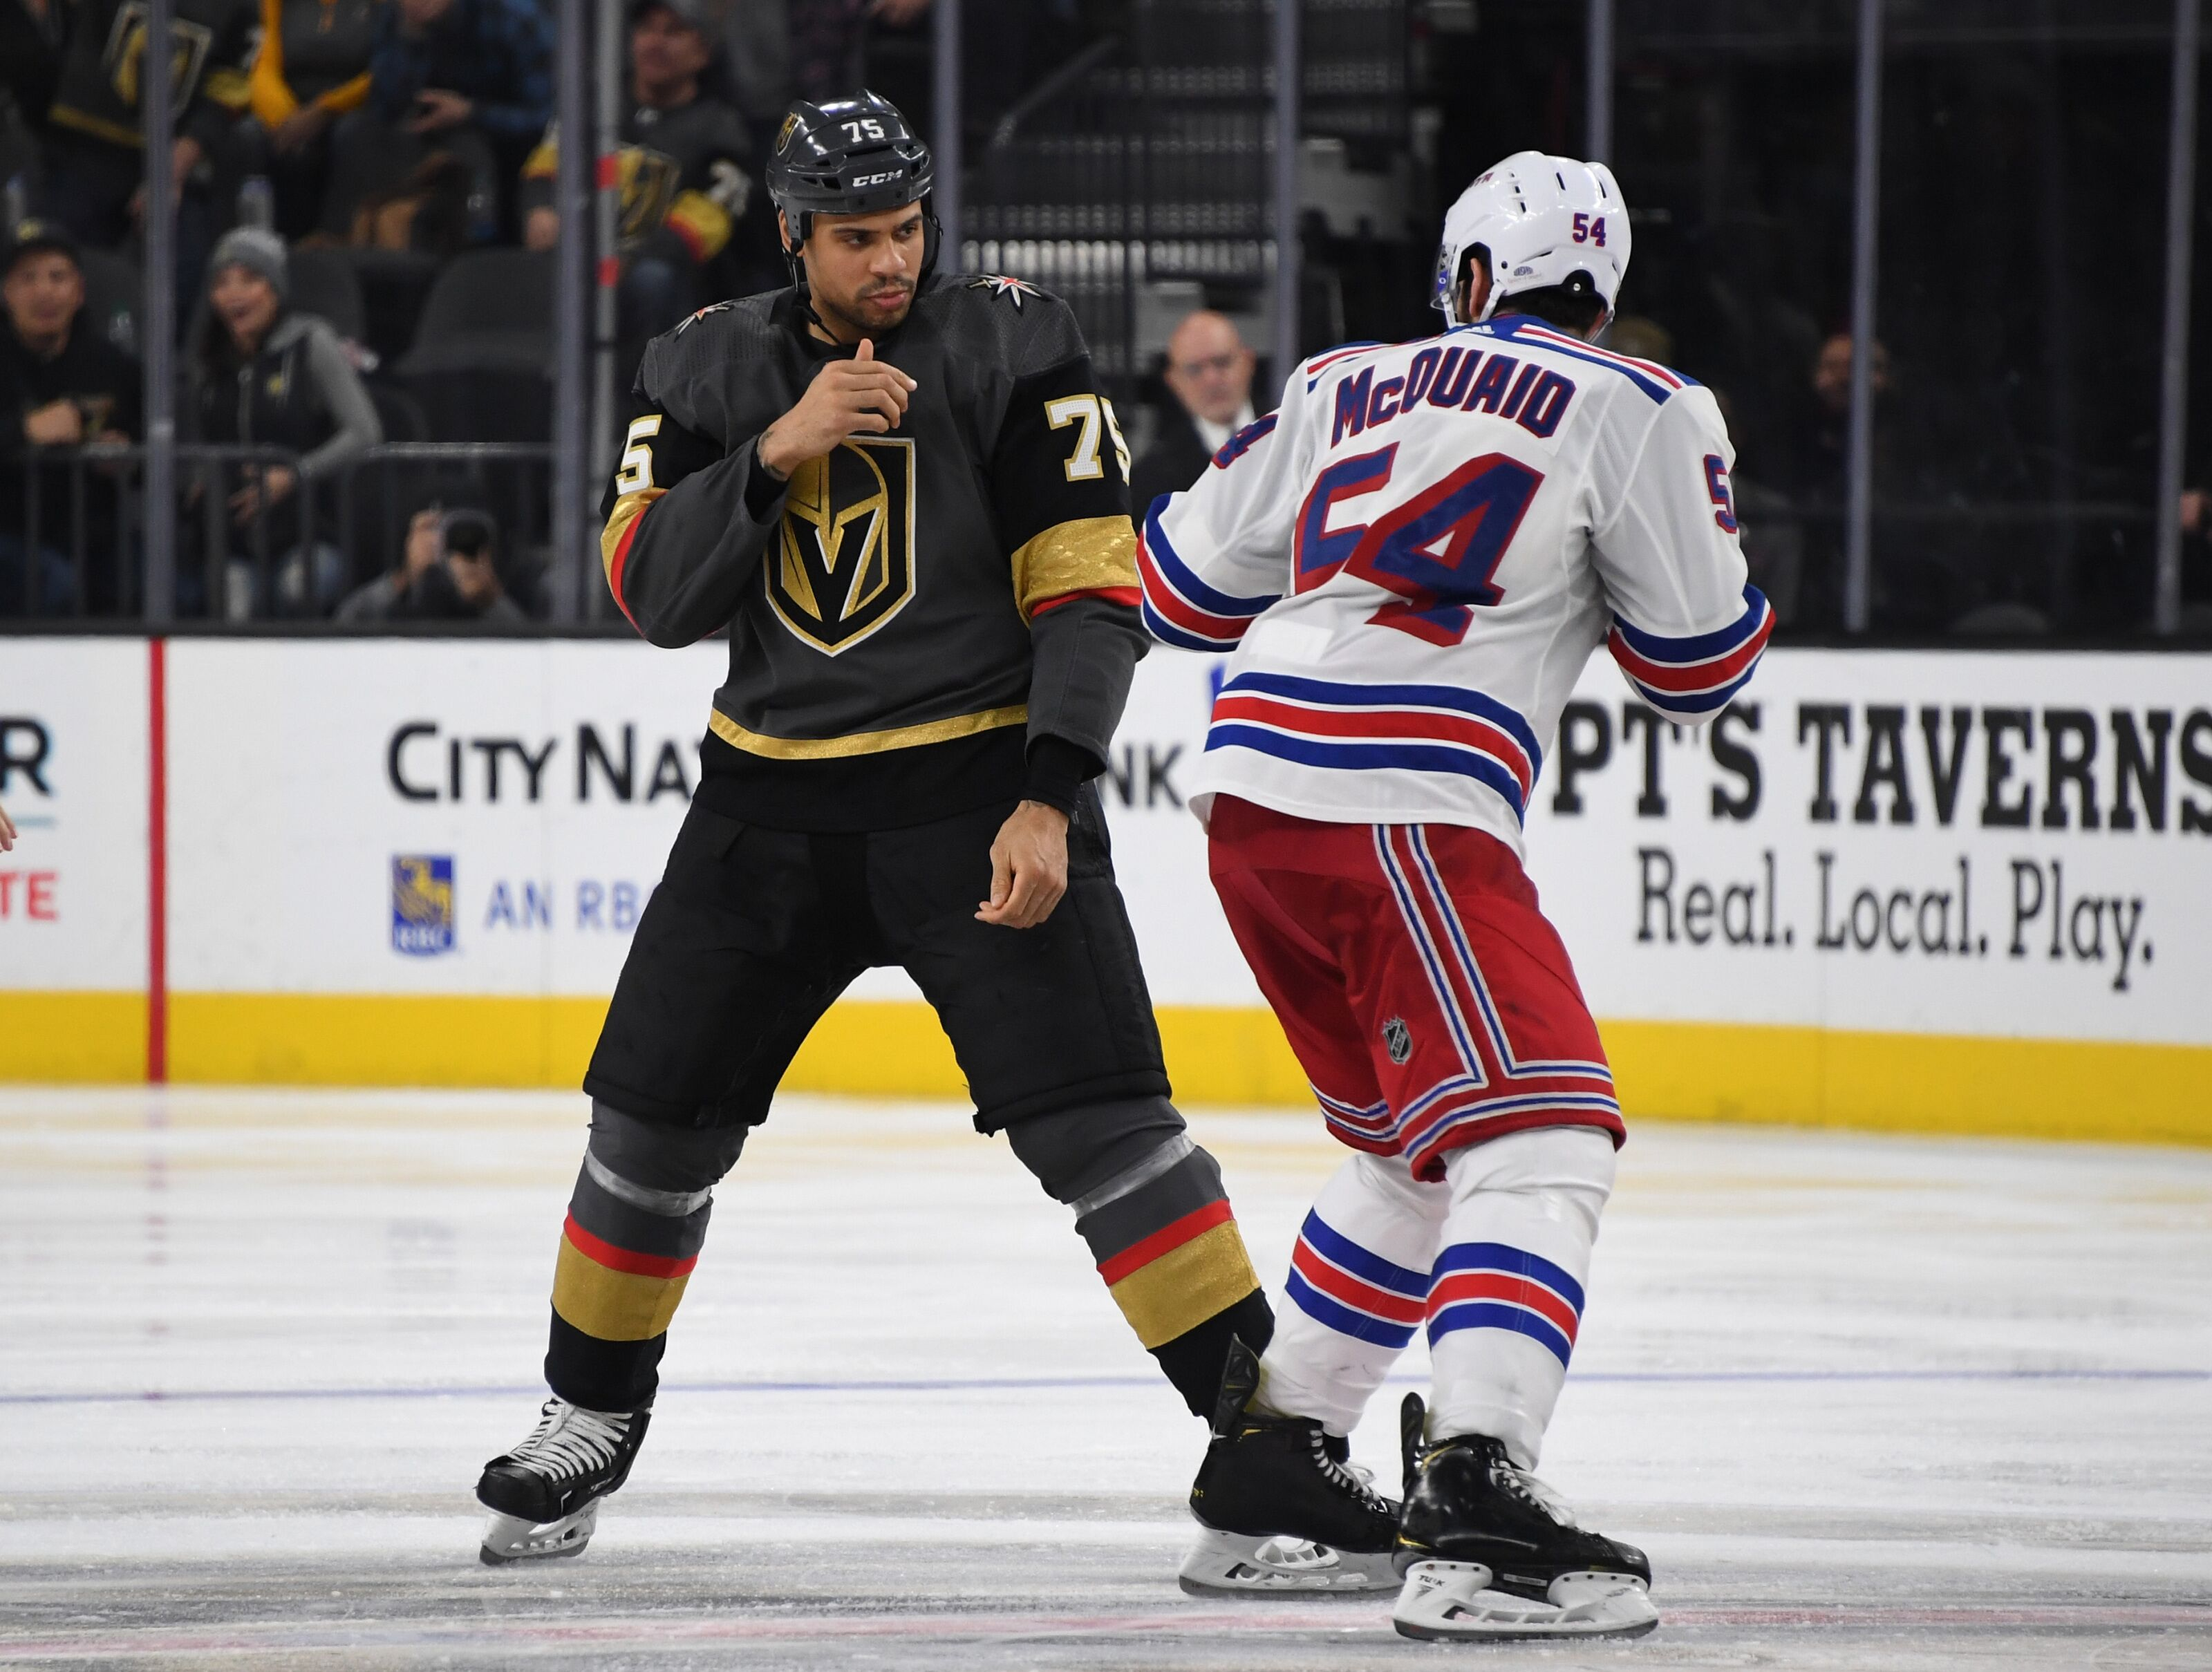 check out 93ac9 a250d Is Ryan Reaves a UFC contender after this win over Adam McQuiad?